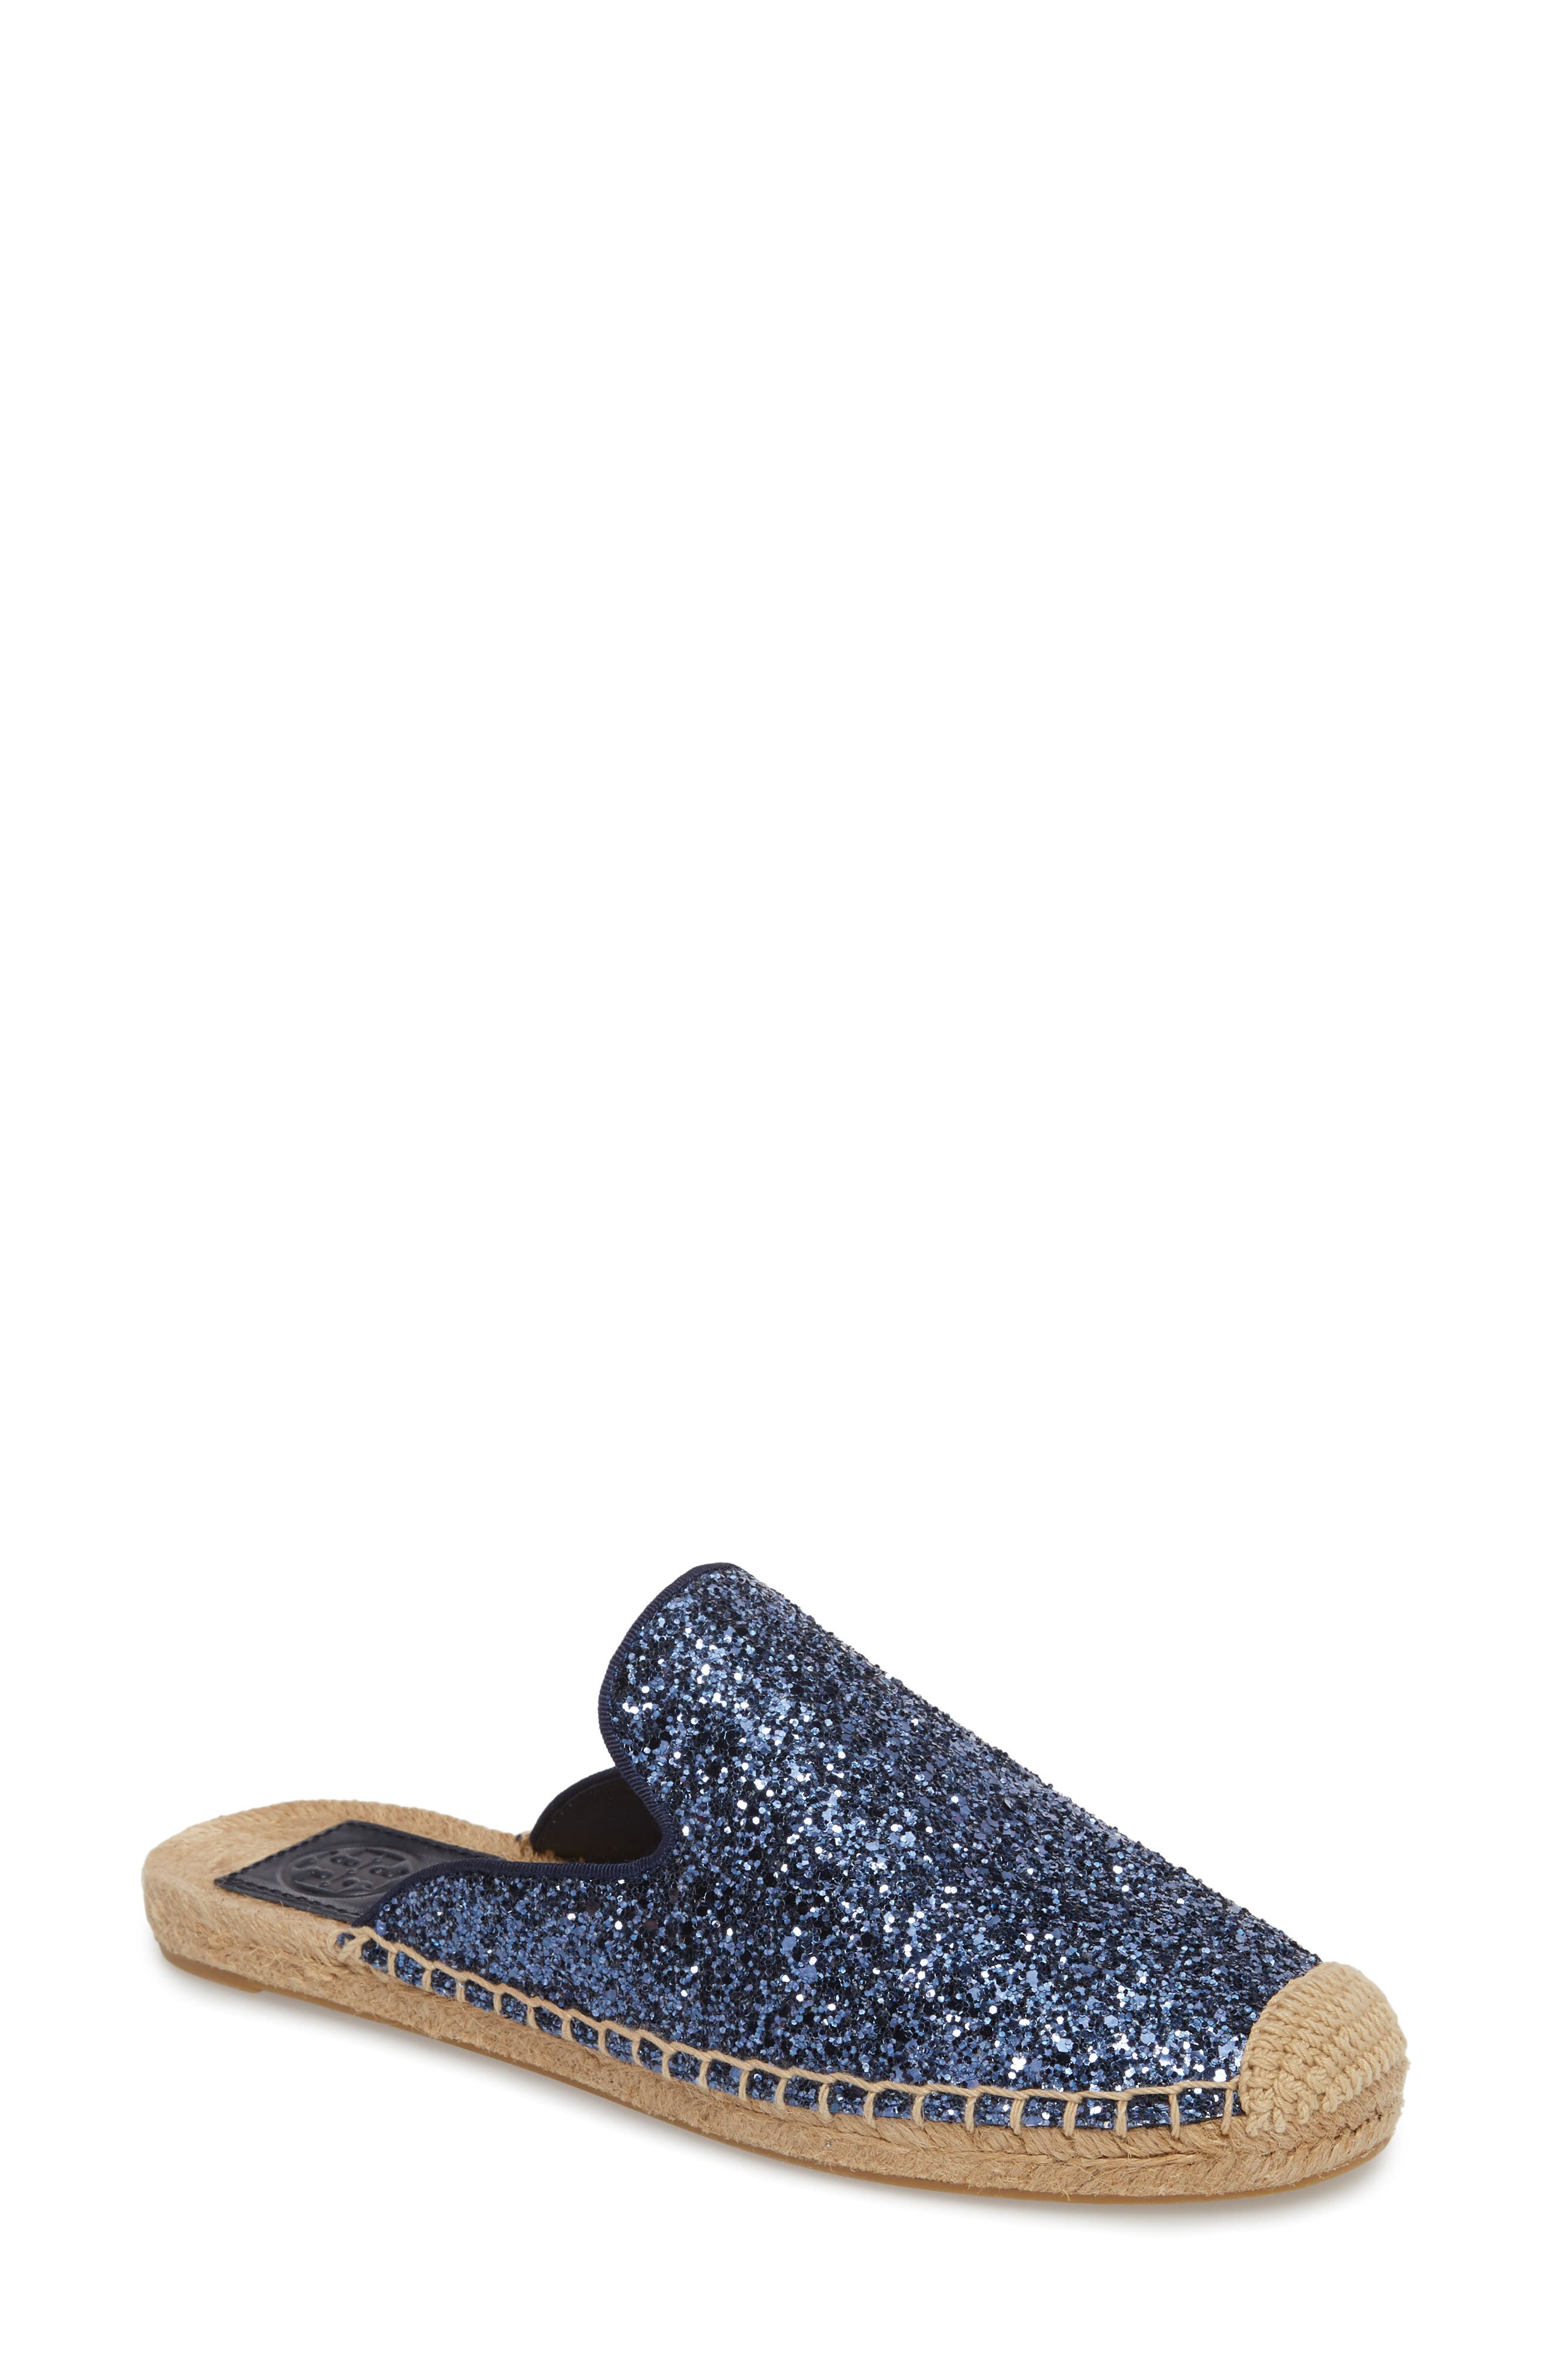 Max Glitter Espadrille Mule,                             Main thumbnail 1, color,                             Perfect Navy